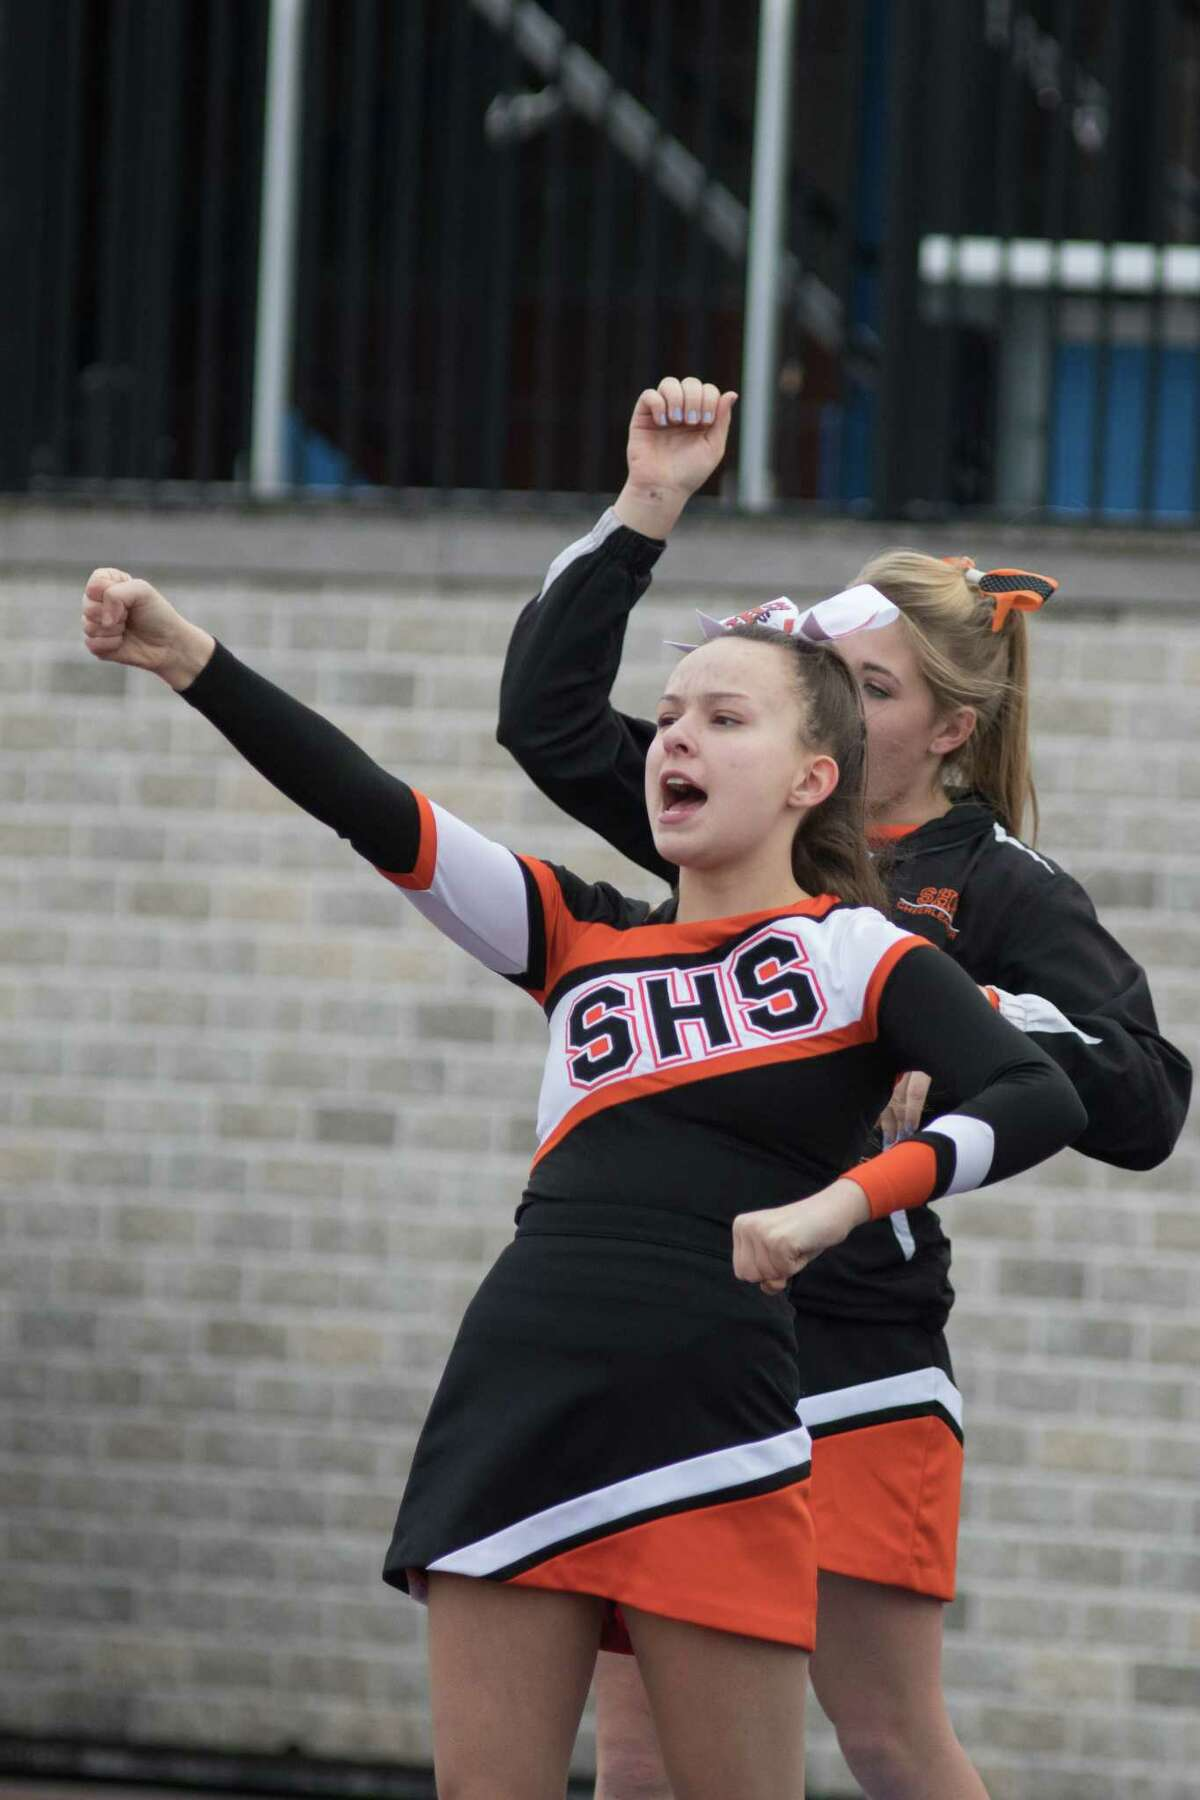 Schuylerville's Cheerleaders cheer for their team in the NYSPHSAA Class B Football East Semifinals in Middletown, NY on November 23, 2019.